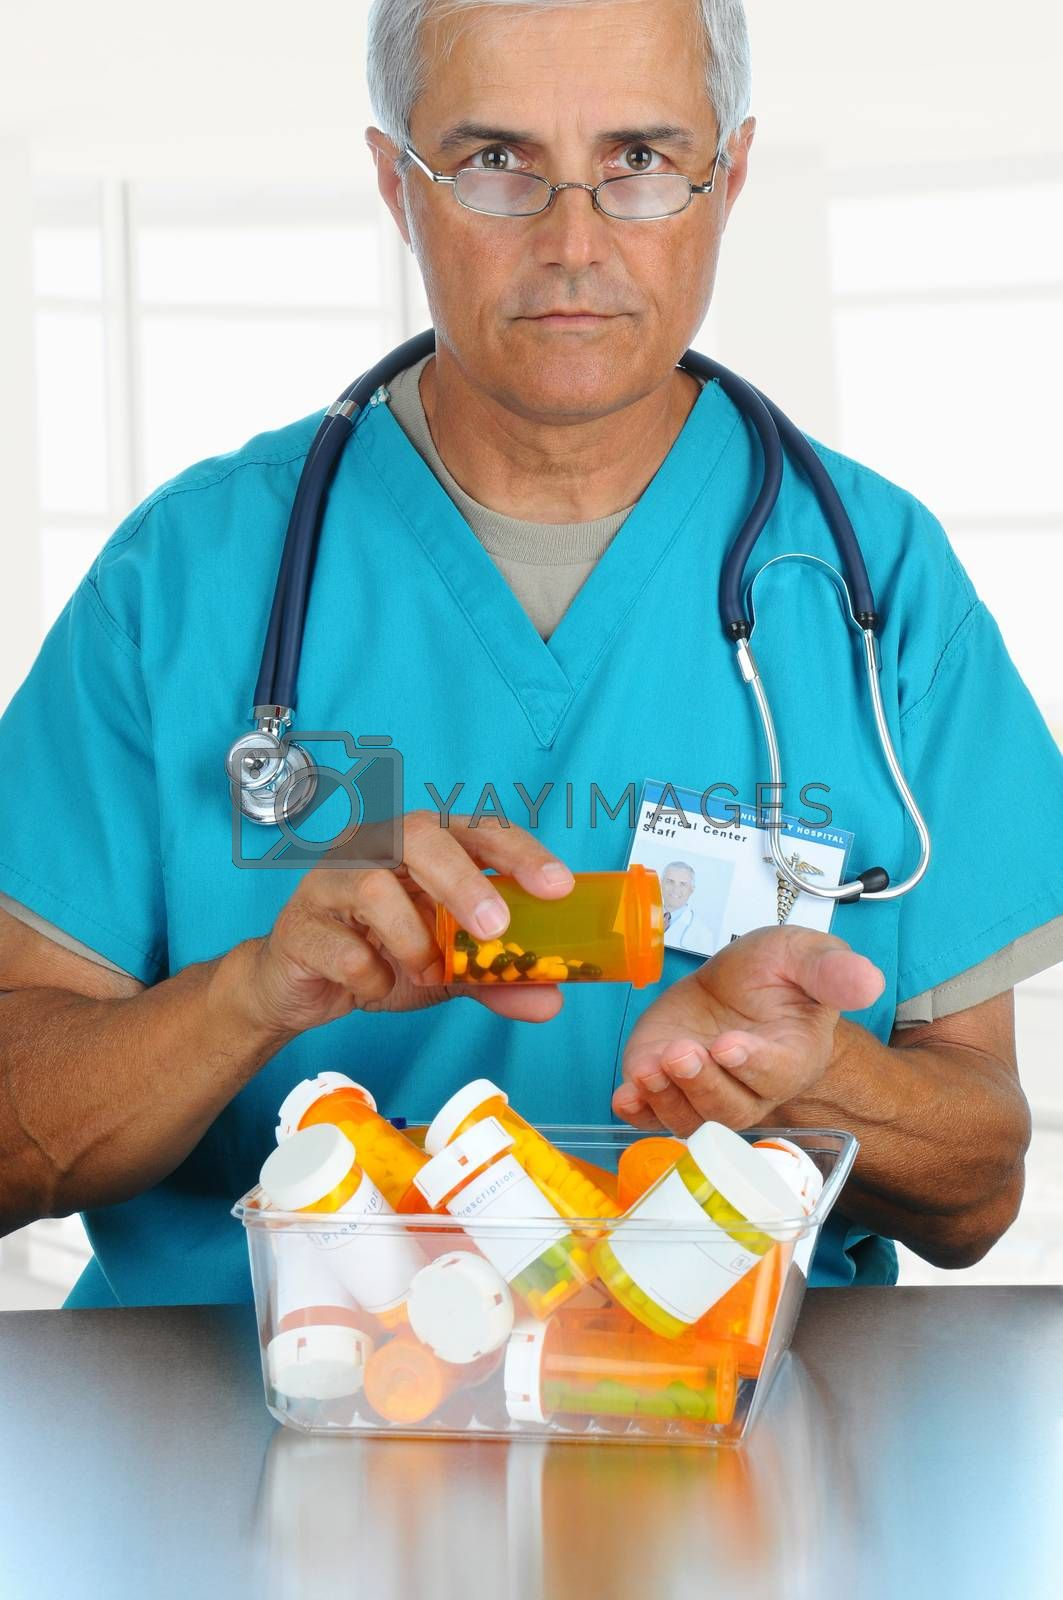 Smiling middle aged doctor pouring prescription medicine from a bottle into his hand. Vertical format in modern office setting.